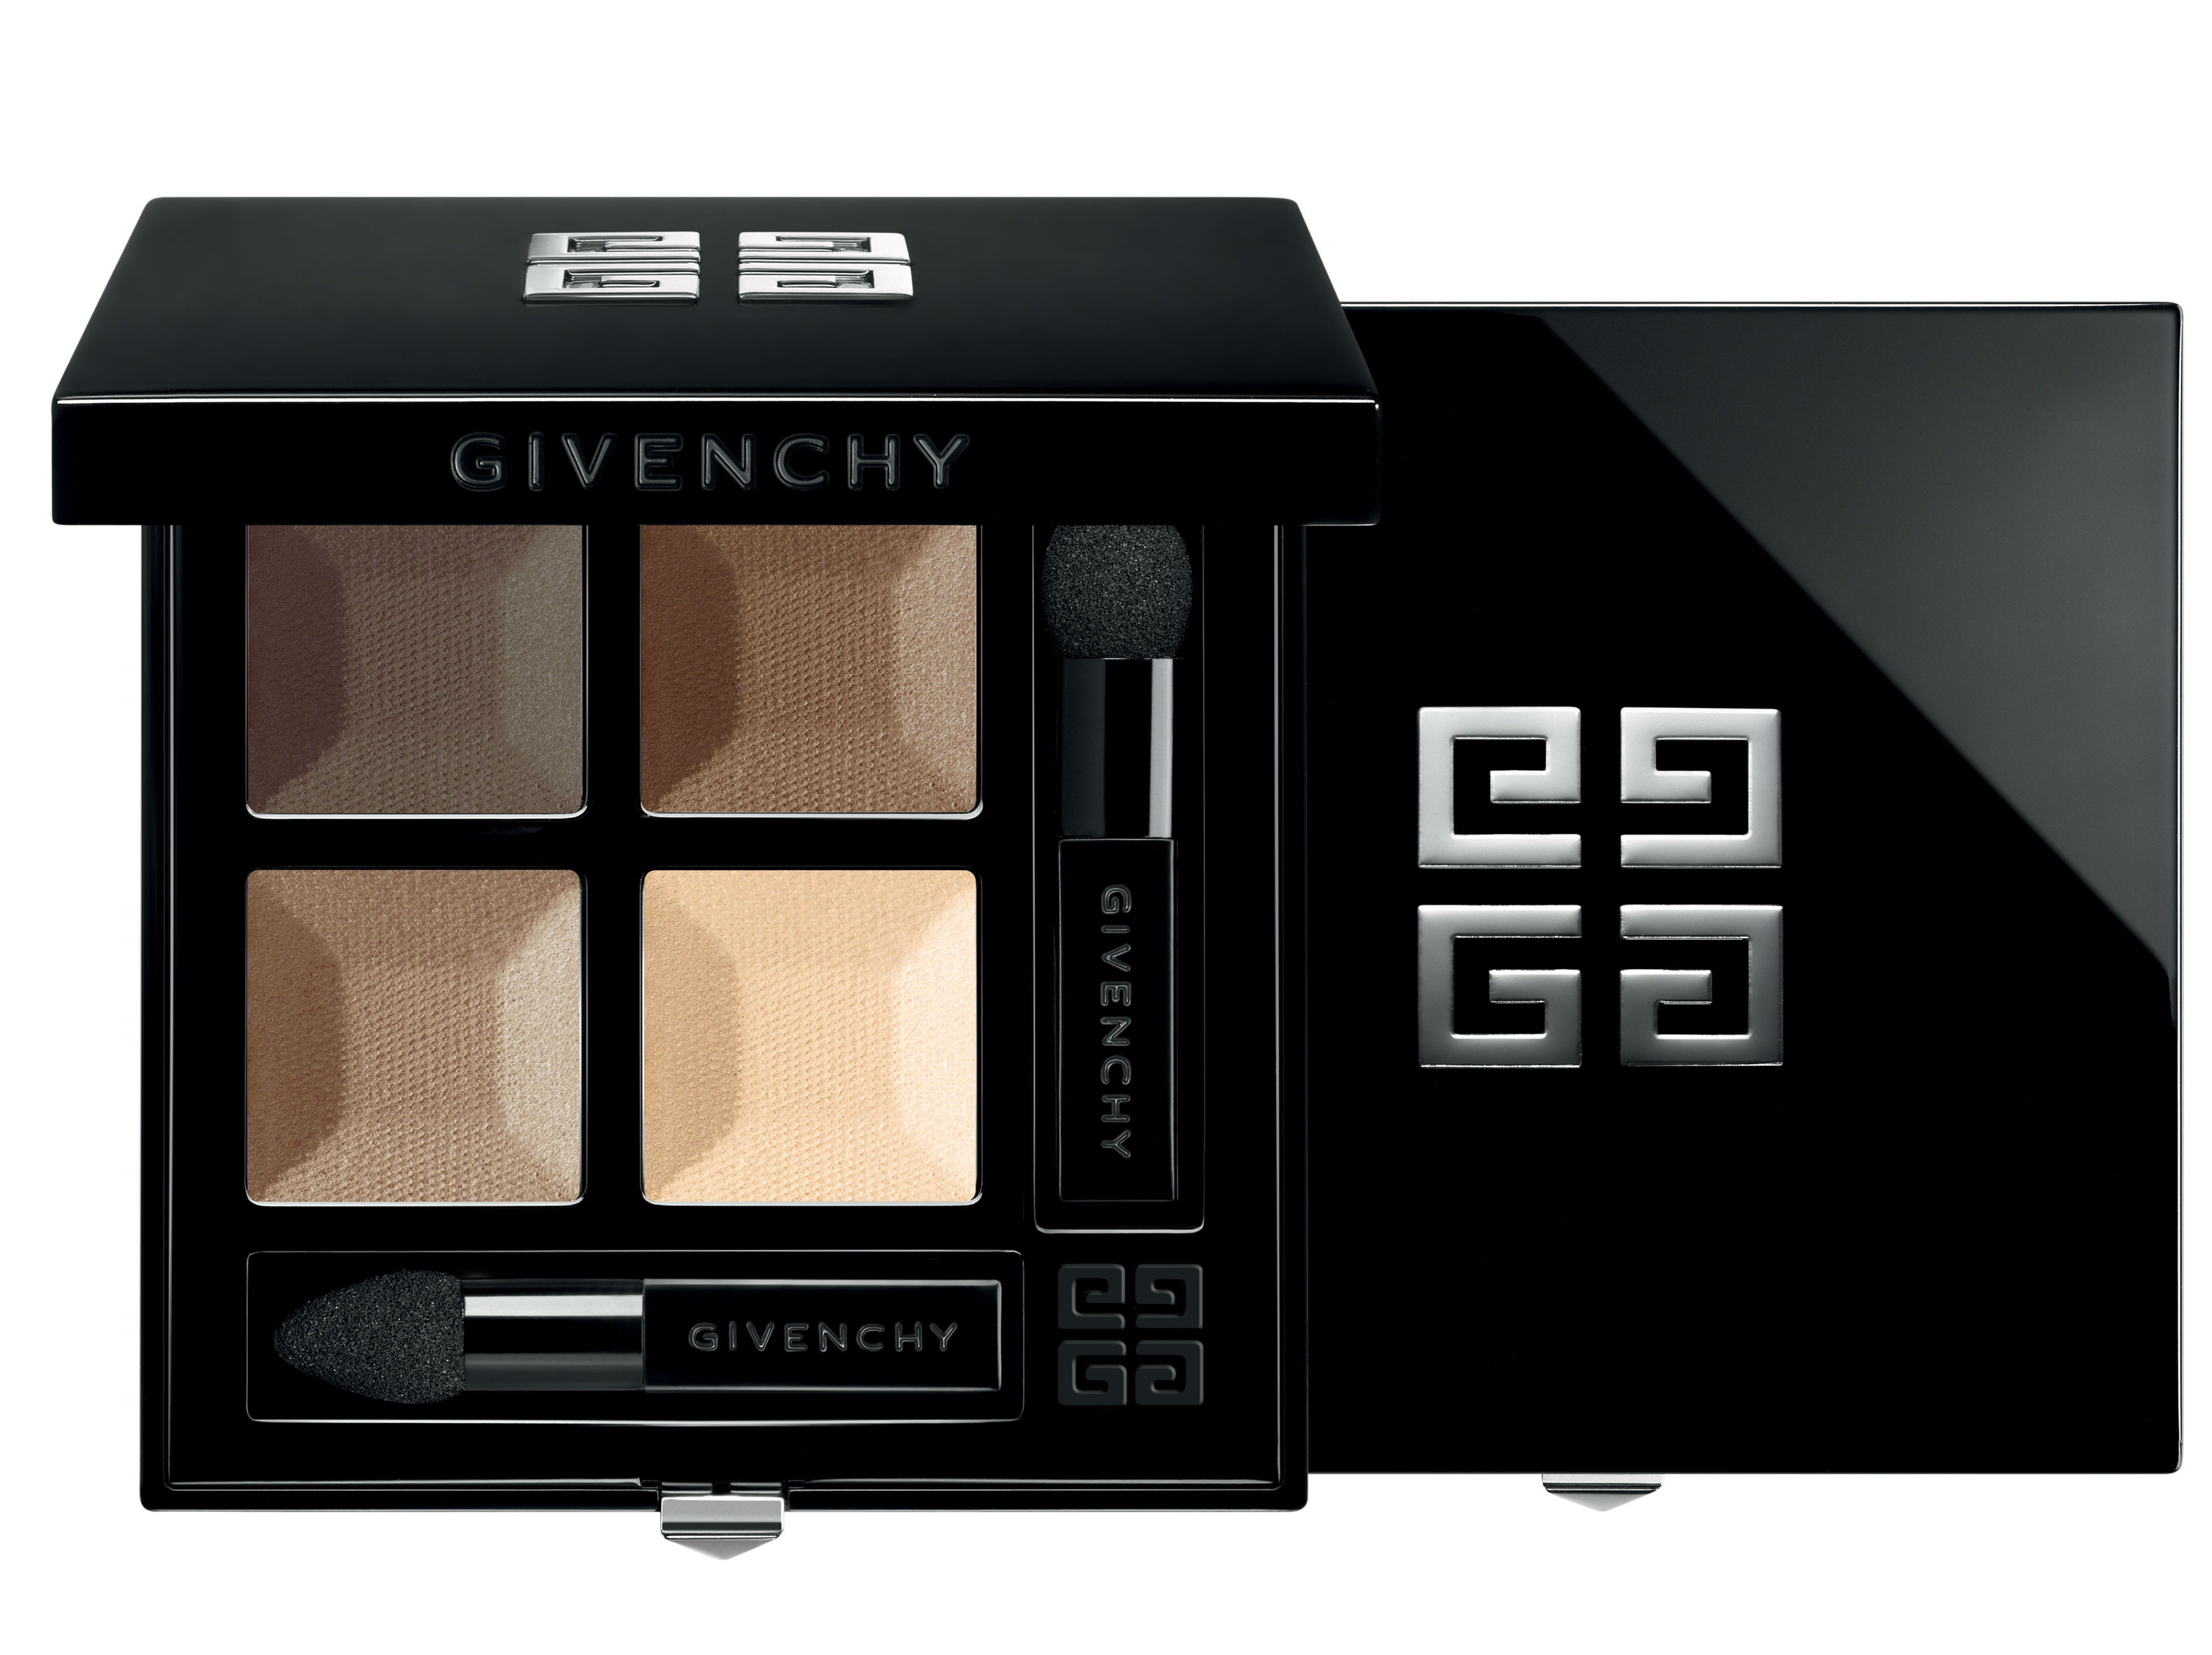 Givenchy Prisme Quatuor in No. 9 Delicate